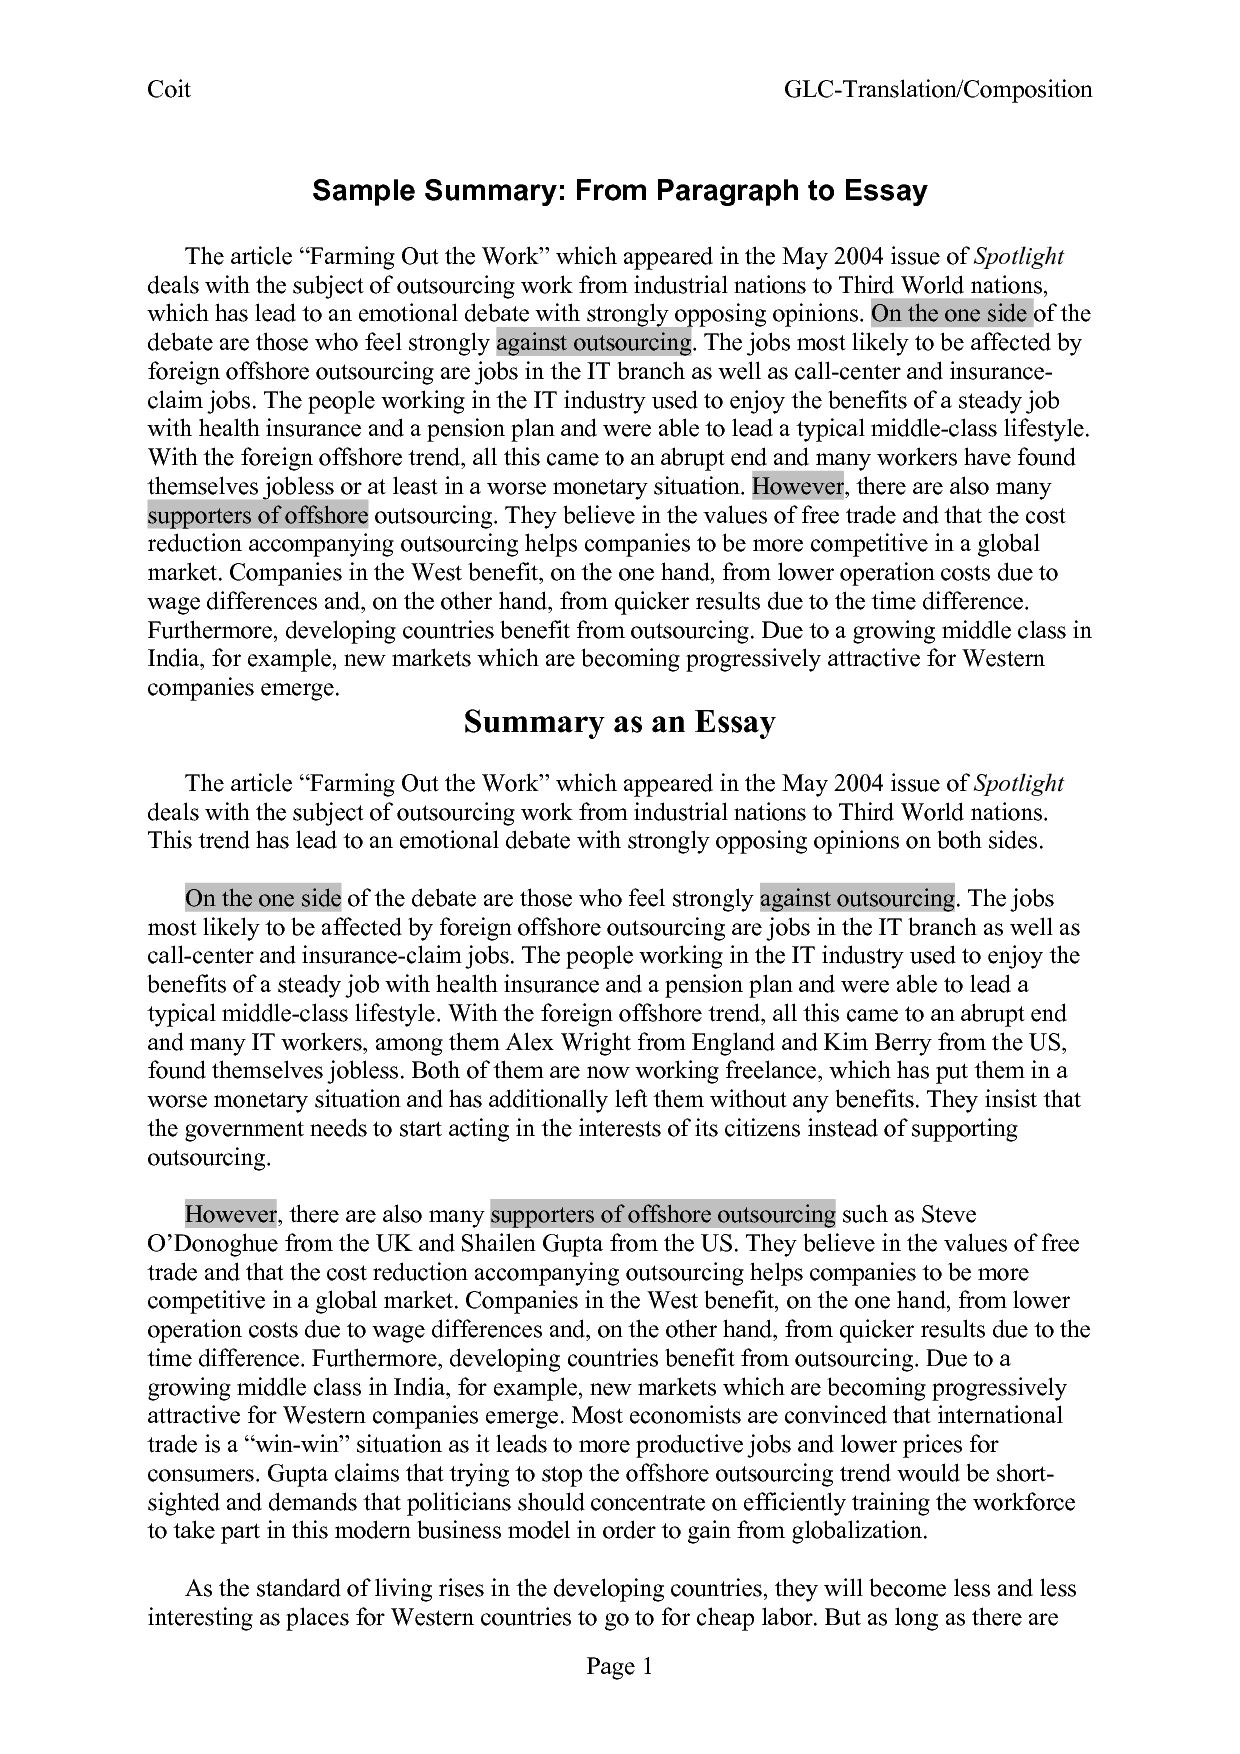 005 Essay Example Sample Summary Papers 248300 Imposing Form 4 Paper Examples Apa Critical Full